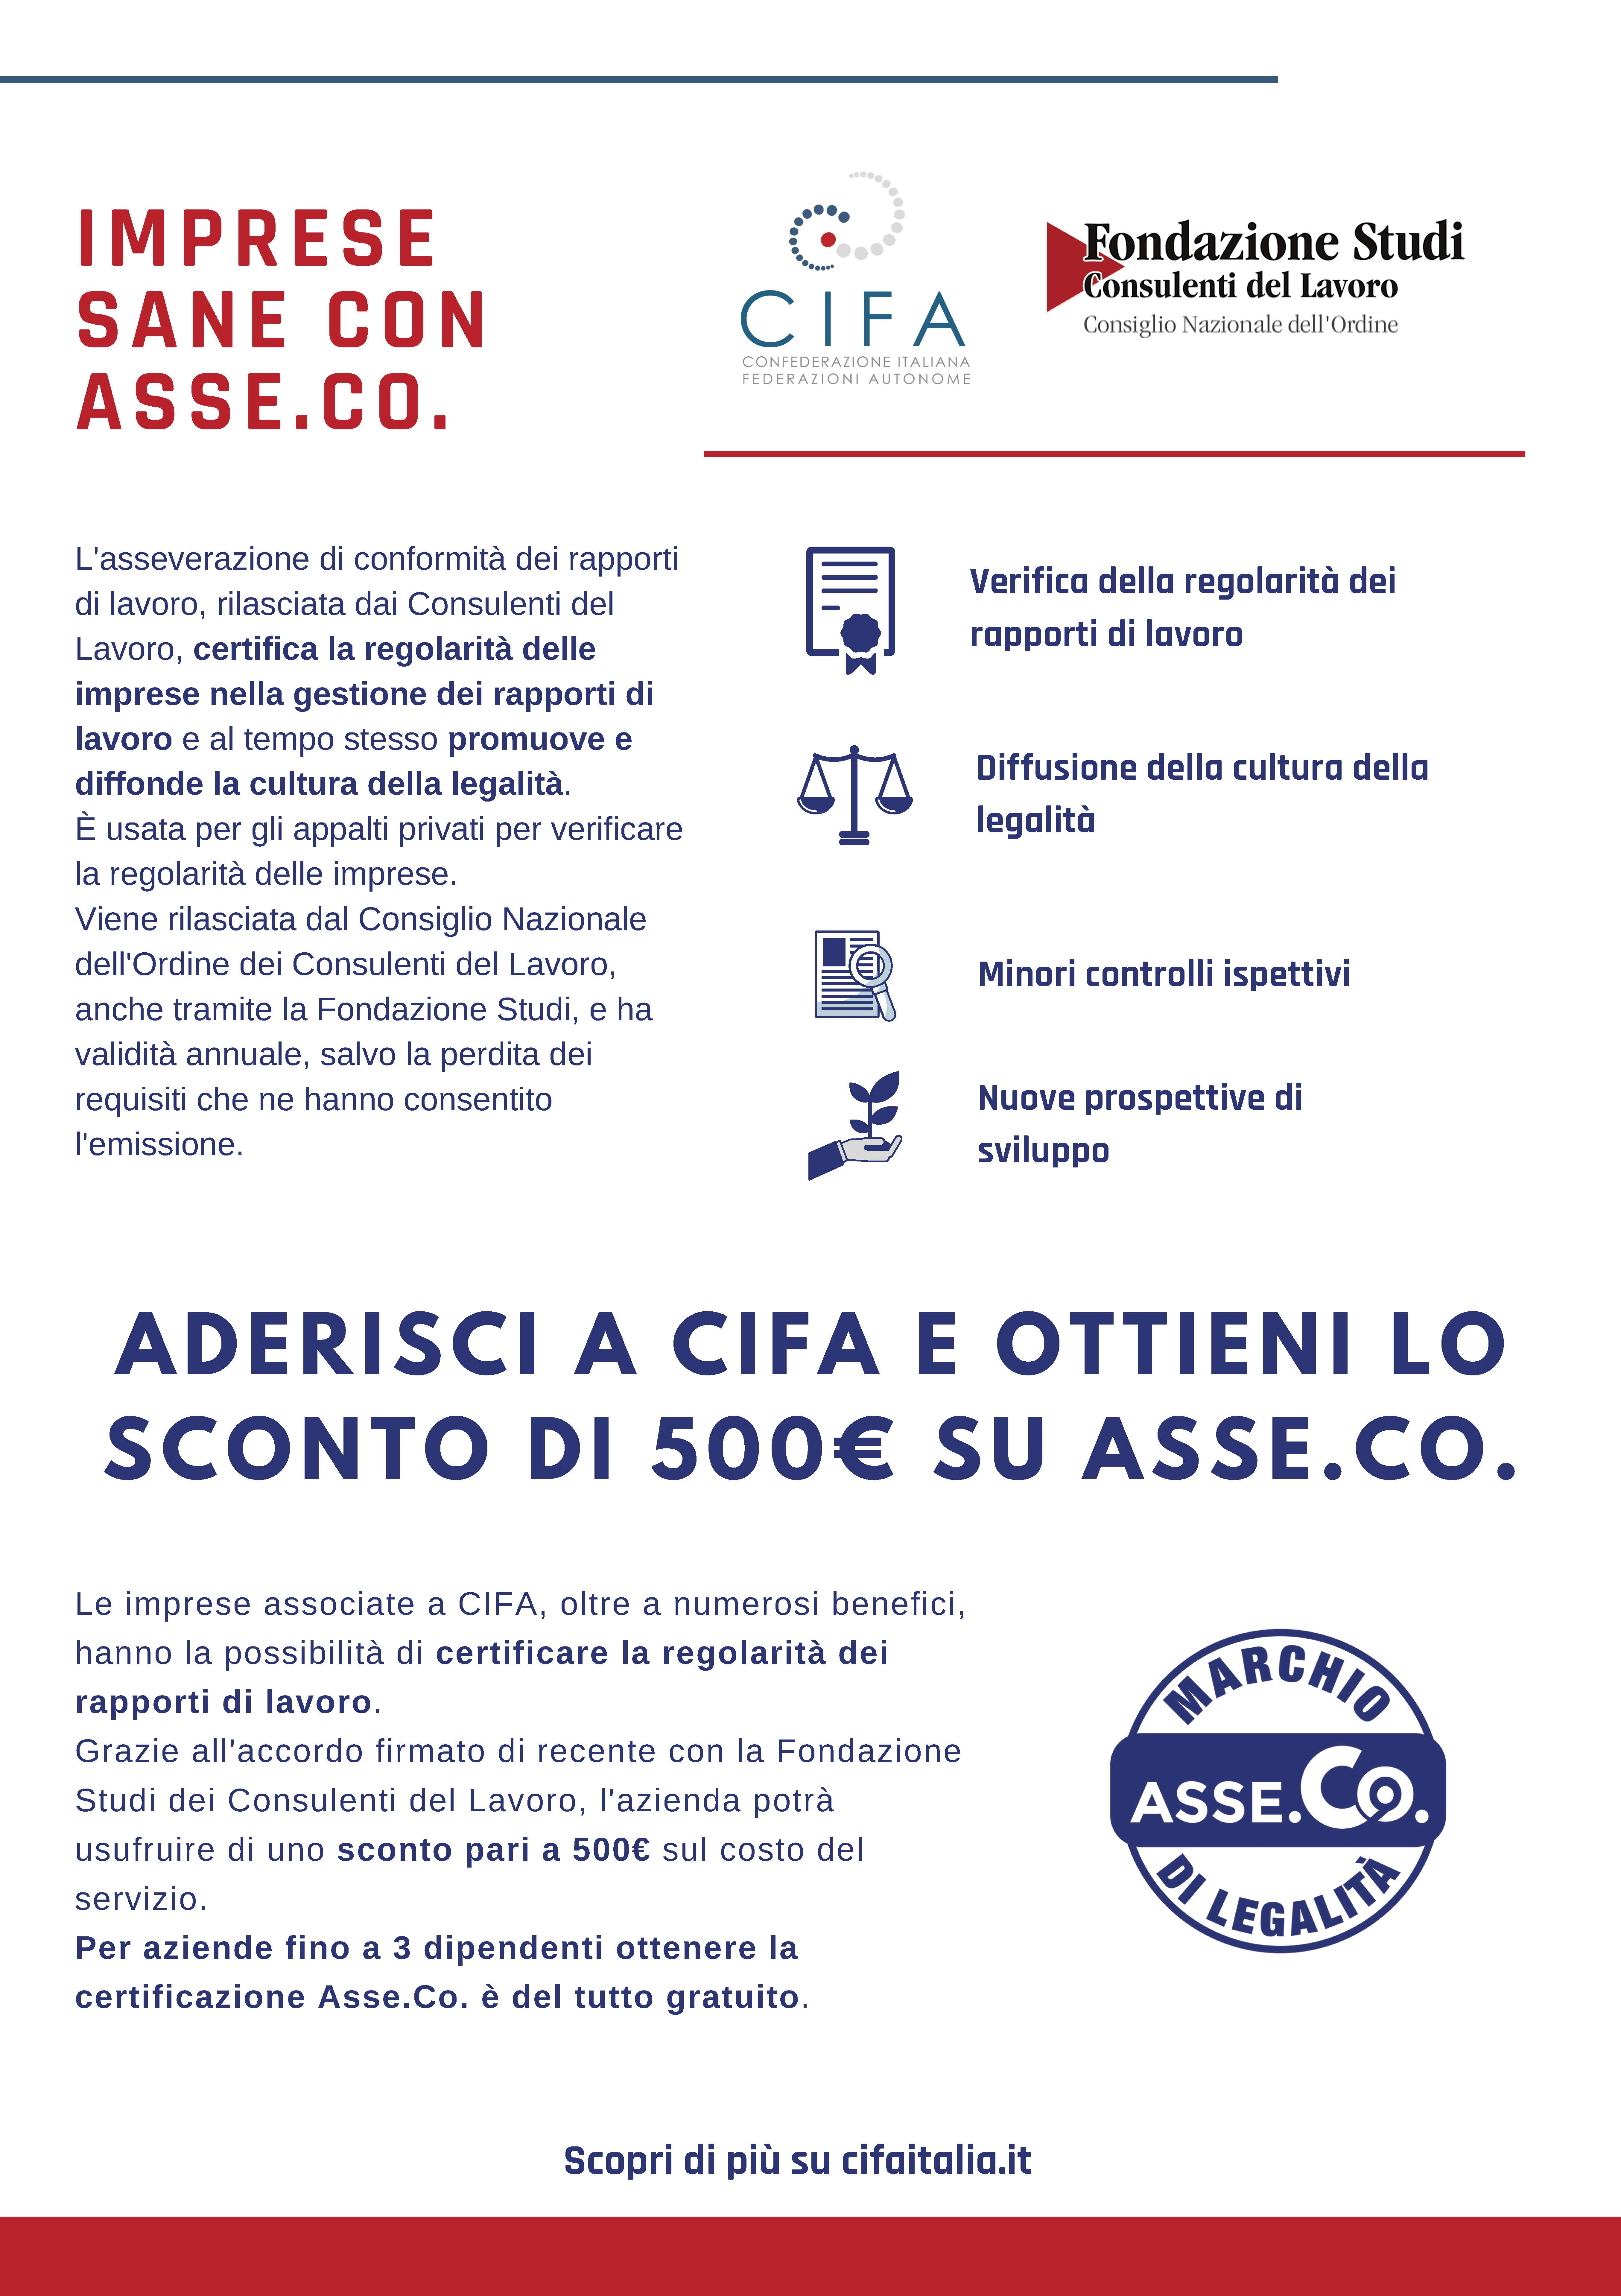 CIFA aderisce all Asseco